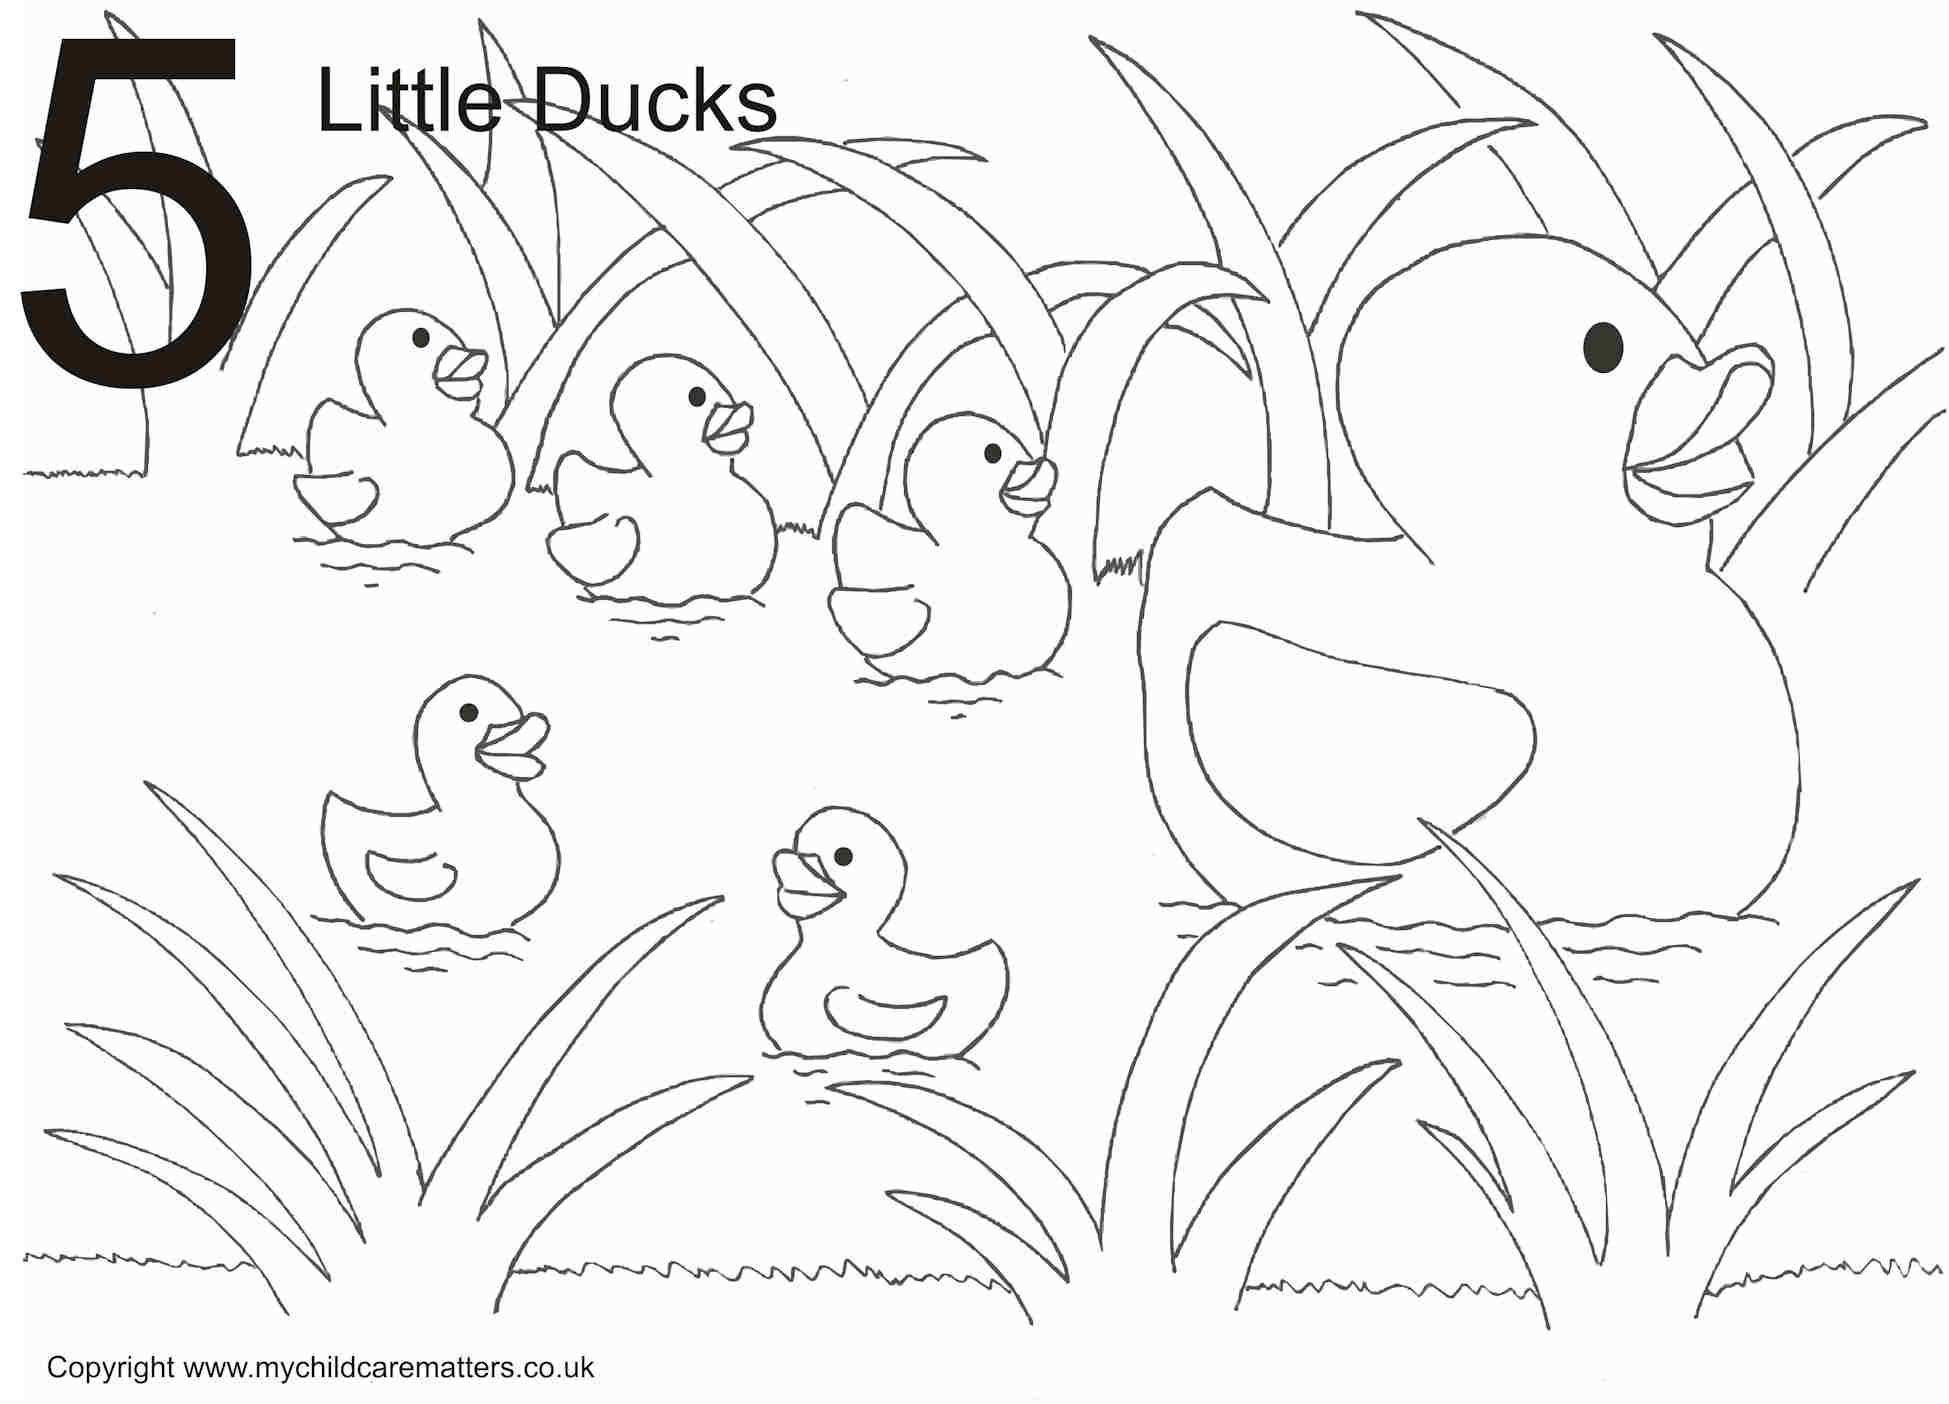 5 Little Ducks Colouring Pages Coloring Pages Little Duck Bird Coloring Pages In 2021 Unicorn Coloring Pages Coloring Pages Bird Coloring Pages